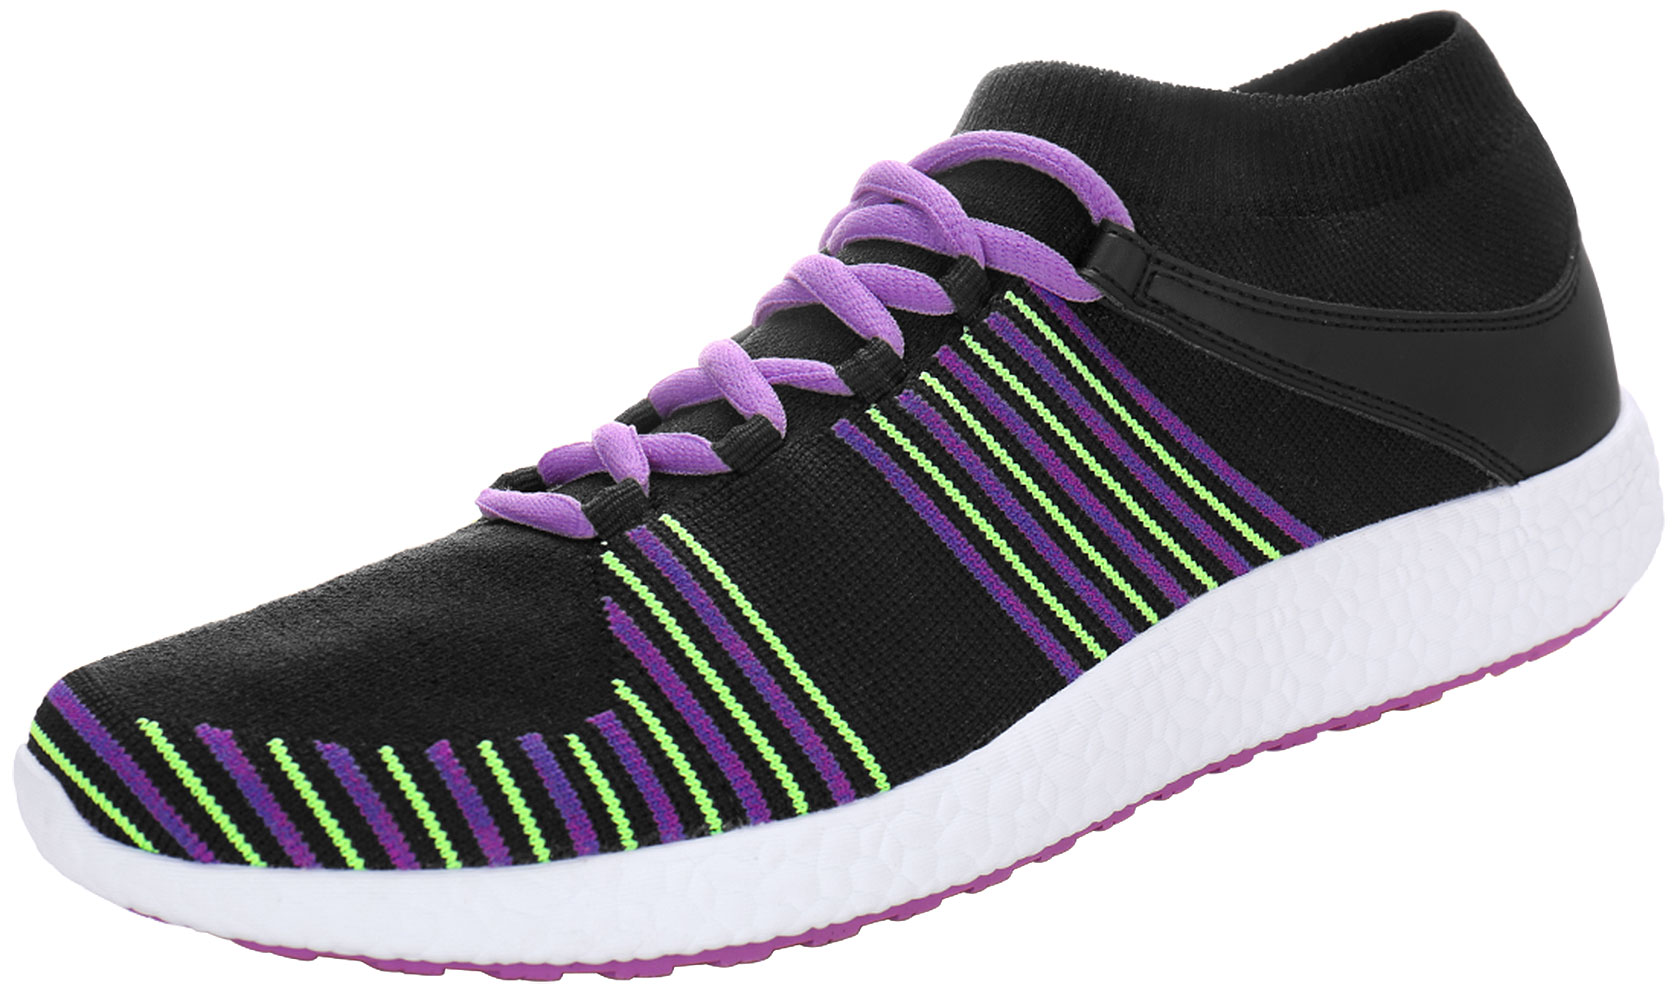 PYPE Women Knitting Mesh Upper Striped Lace Up Training Shoes Black US 7.5